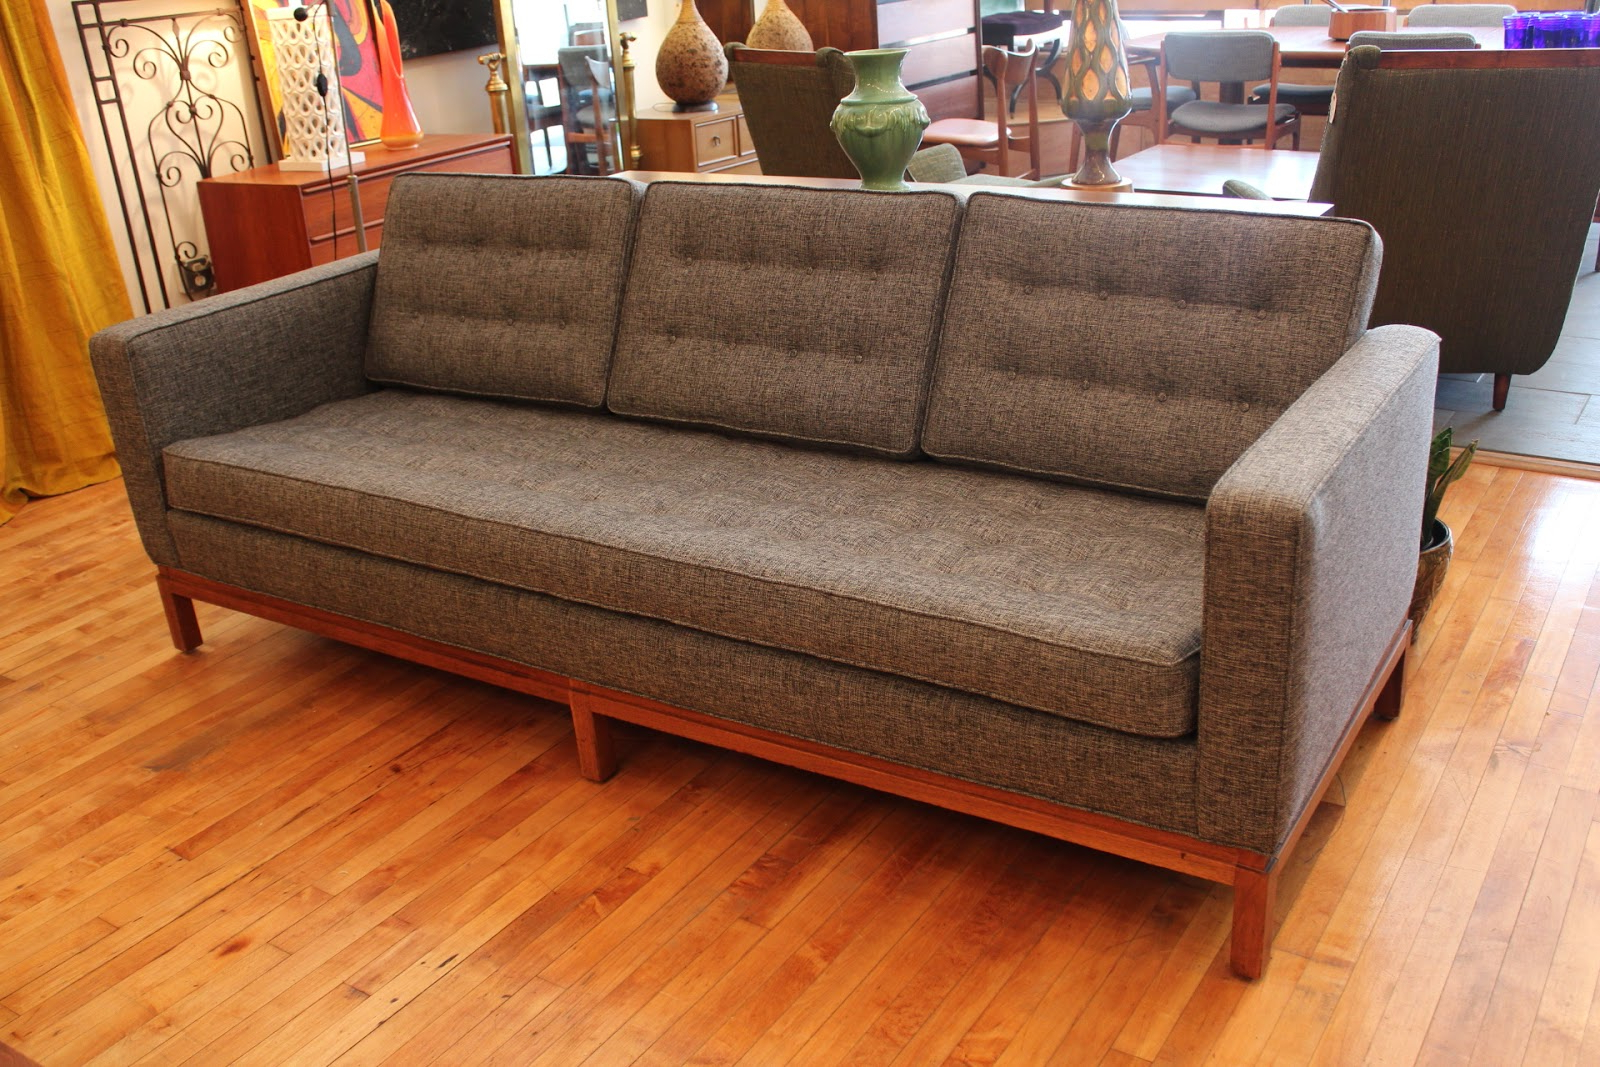 An Orange Moon – Mid Century Modern Inside Florence Mid Century Modern Right Sectional Sofas (View 7 of 20)